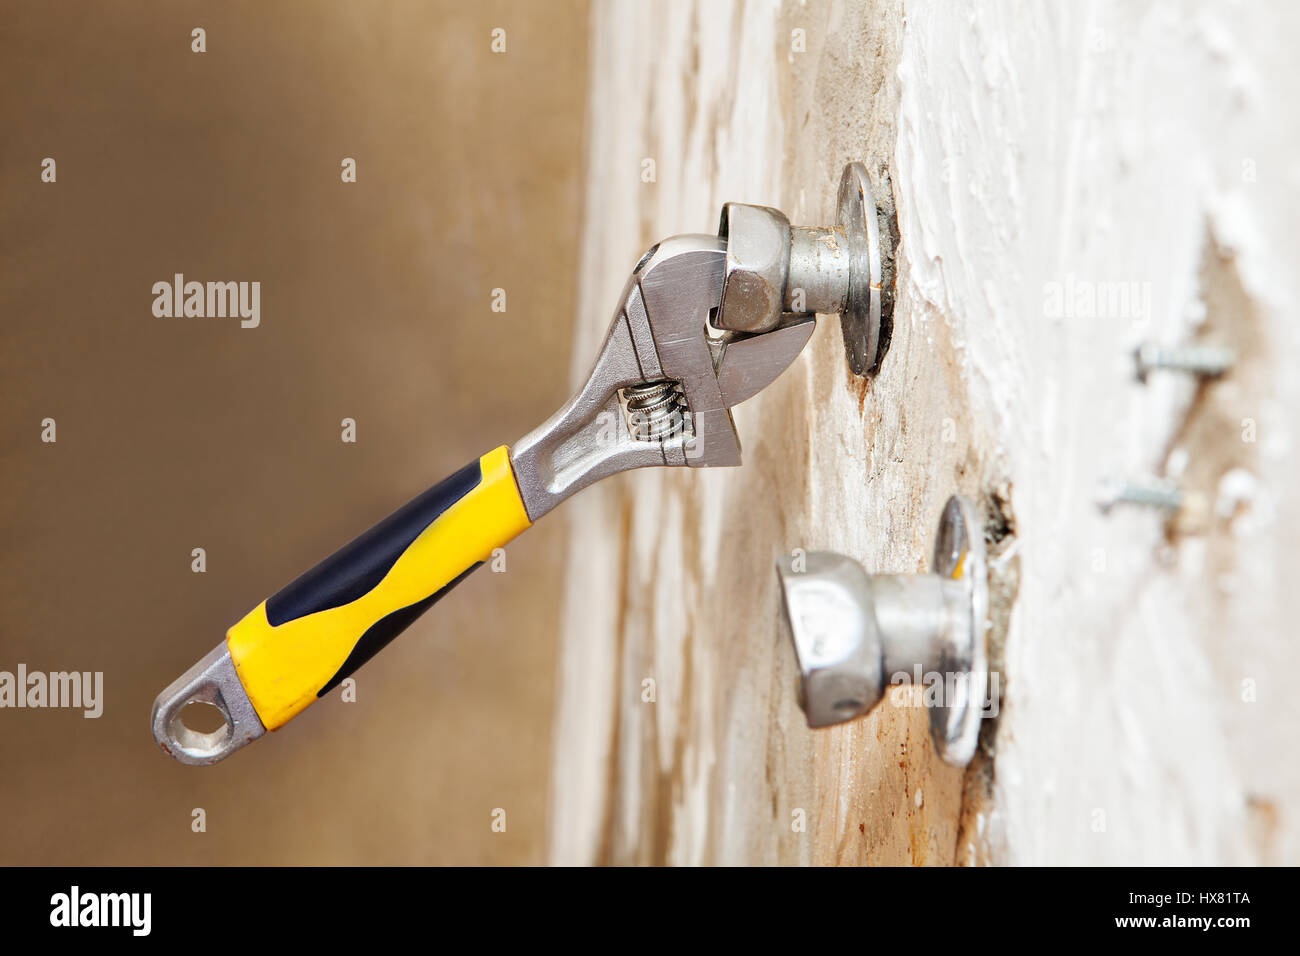 Closeup wall mount faucet eccentric adjusts position with plumbers adjustable wrench. Stock Photo